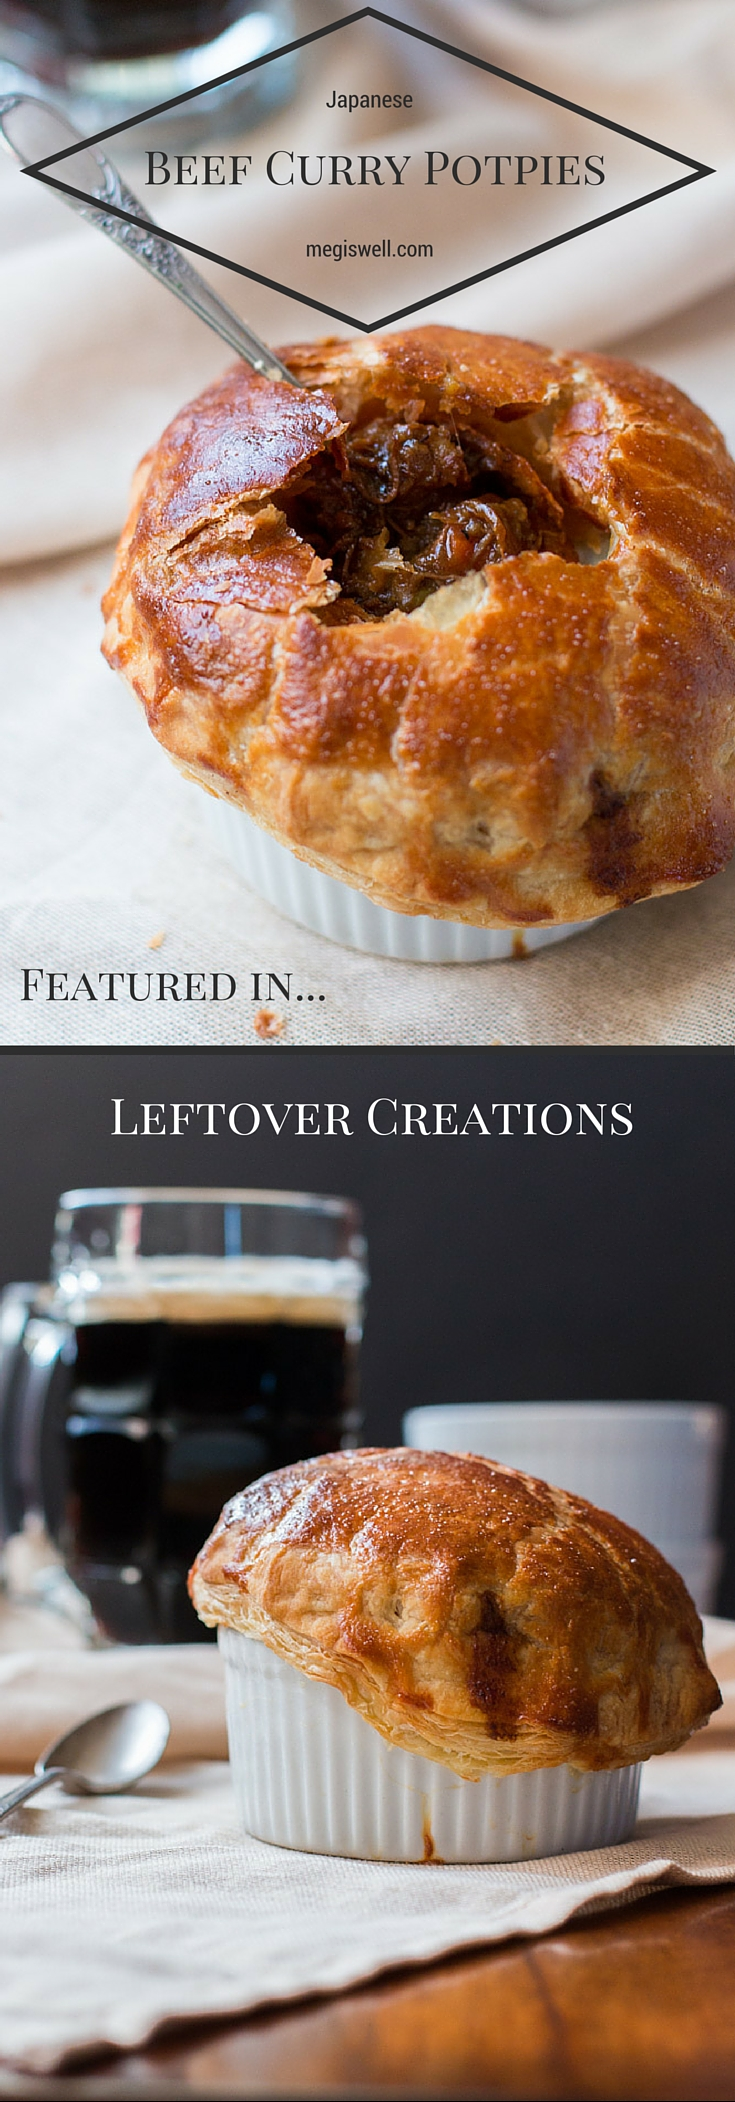 Individual Japanese Curry Potpies. The comfort of Japanese Beef Curry is fused with potpies and the results are amazing.